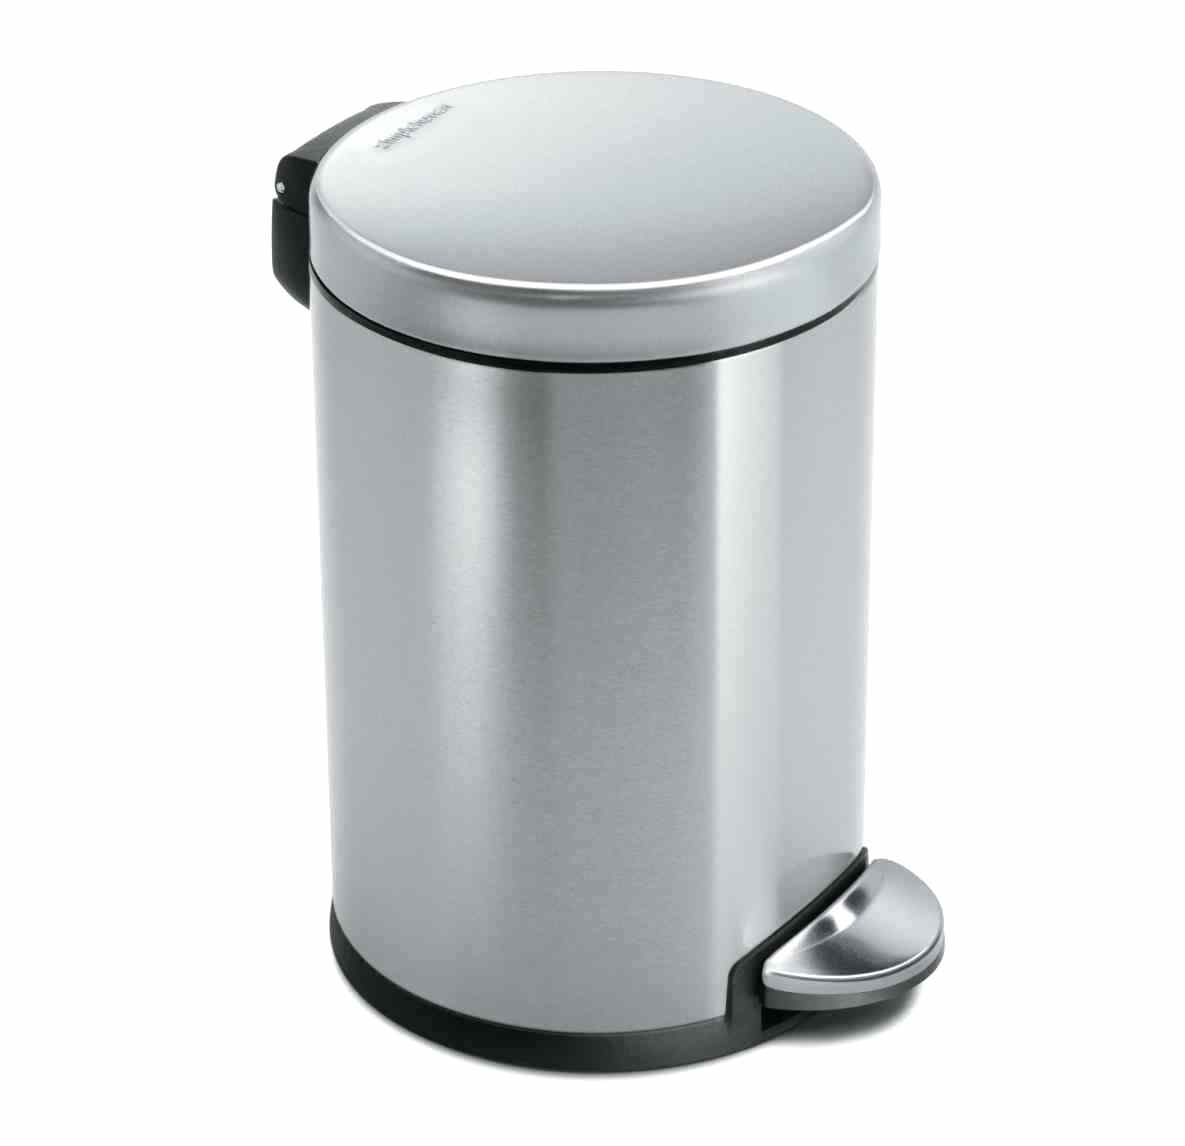 1185x1146 Cute Small Trash Cans Indoor Trash Can In Stainless Decorative